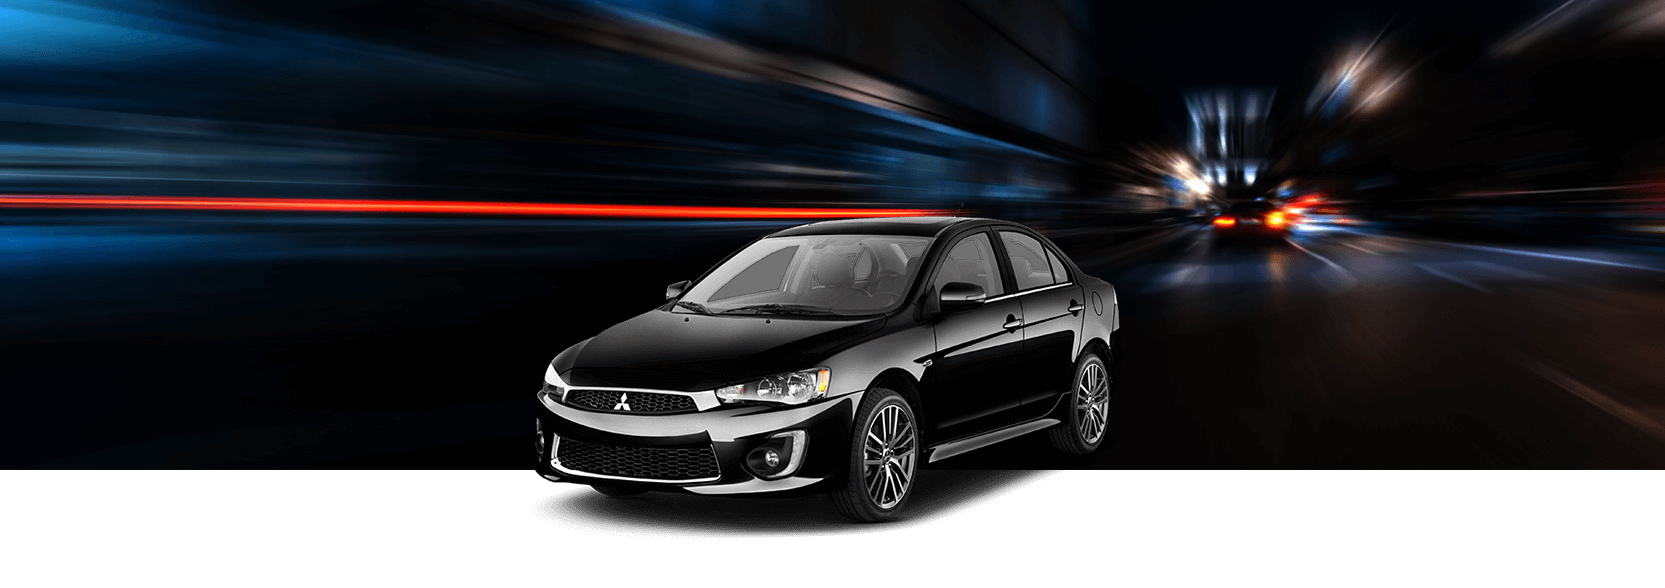 2017 Mitsubishi Lancer with blurred city banner